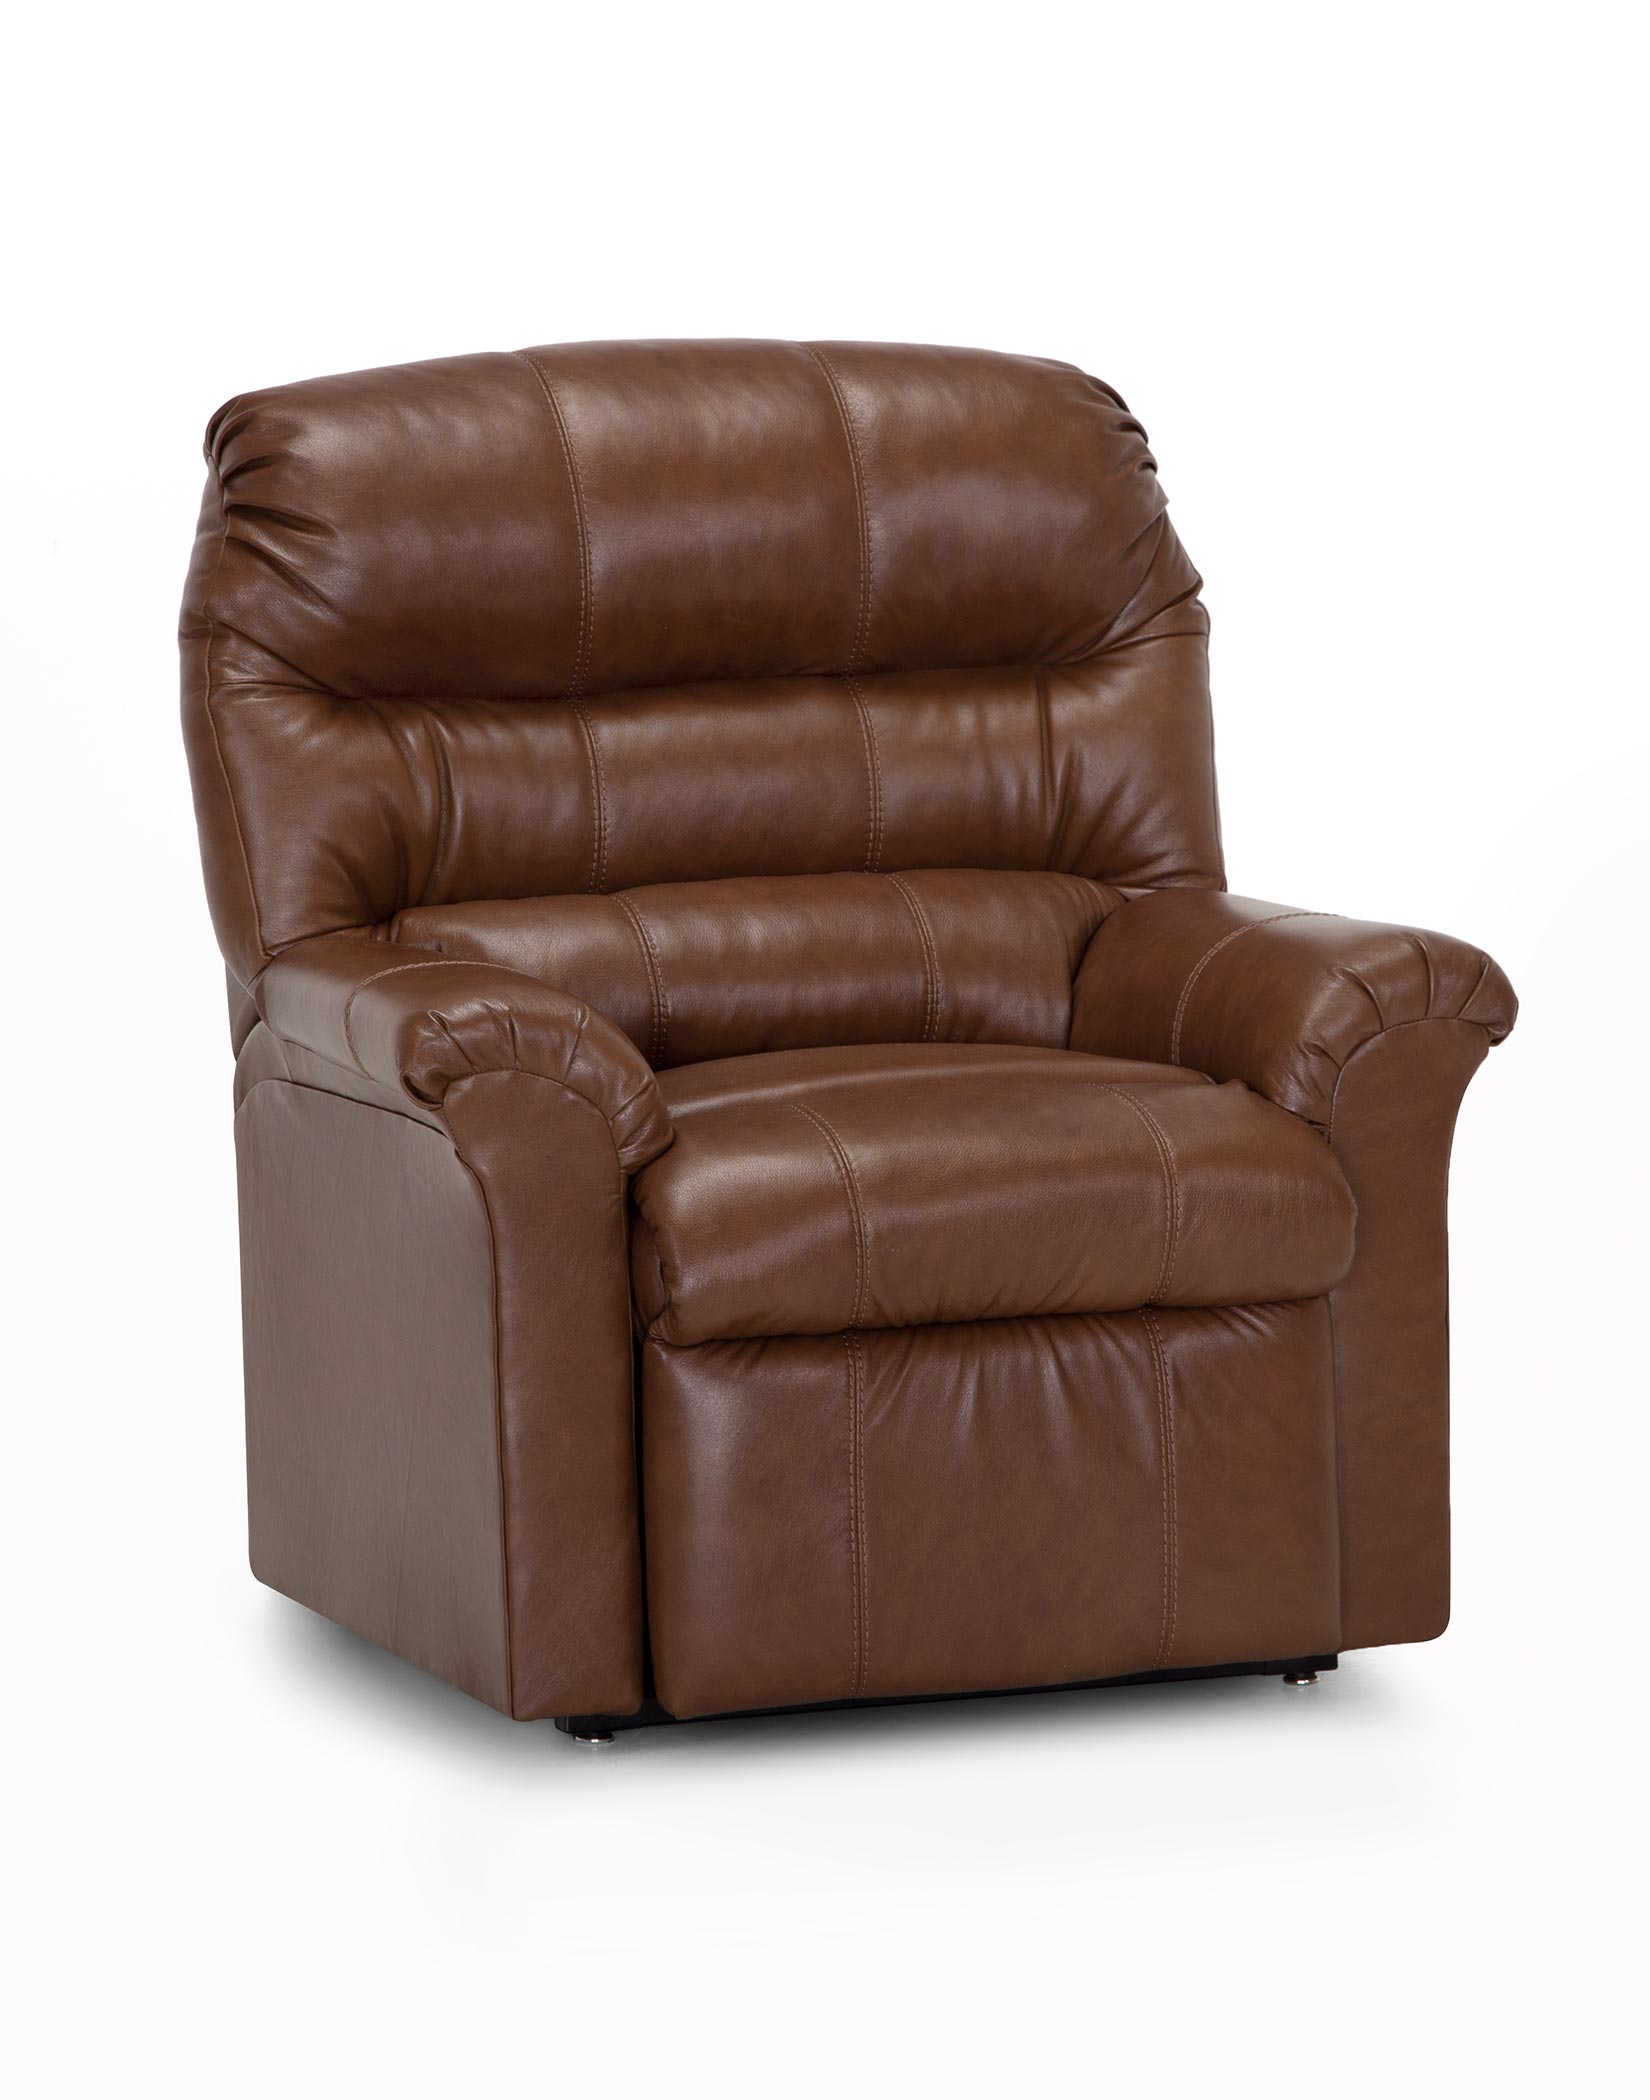 Tucker Leather Lift Chair